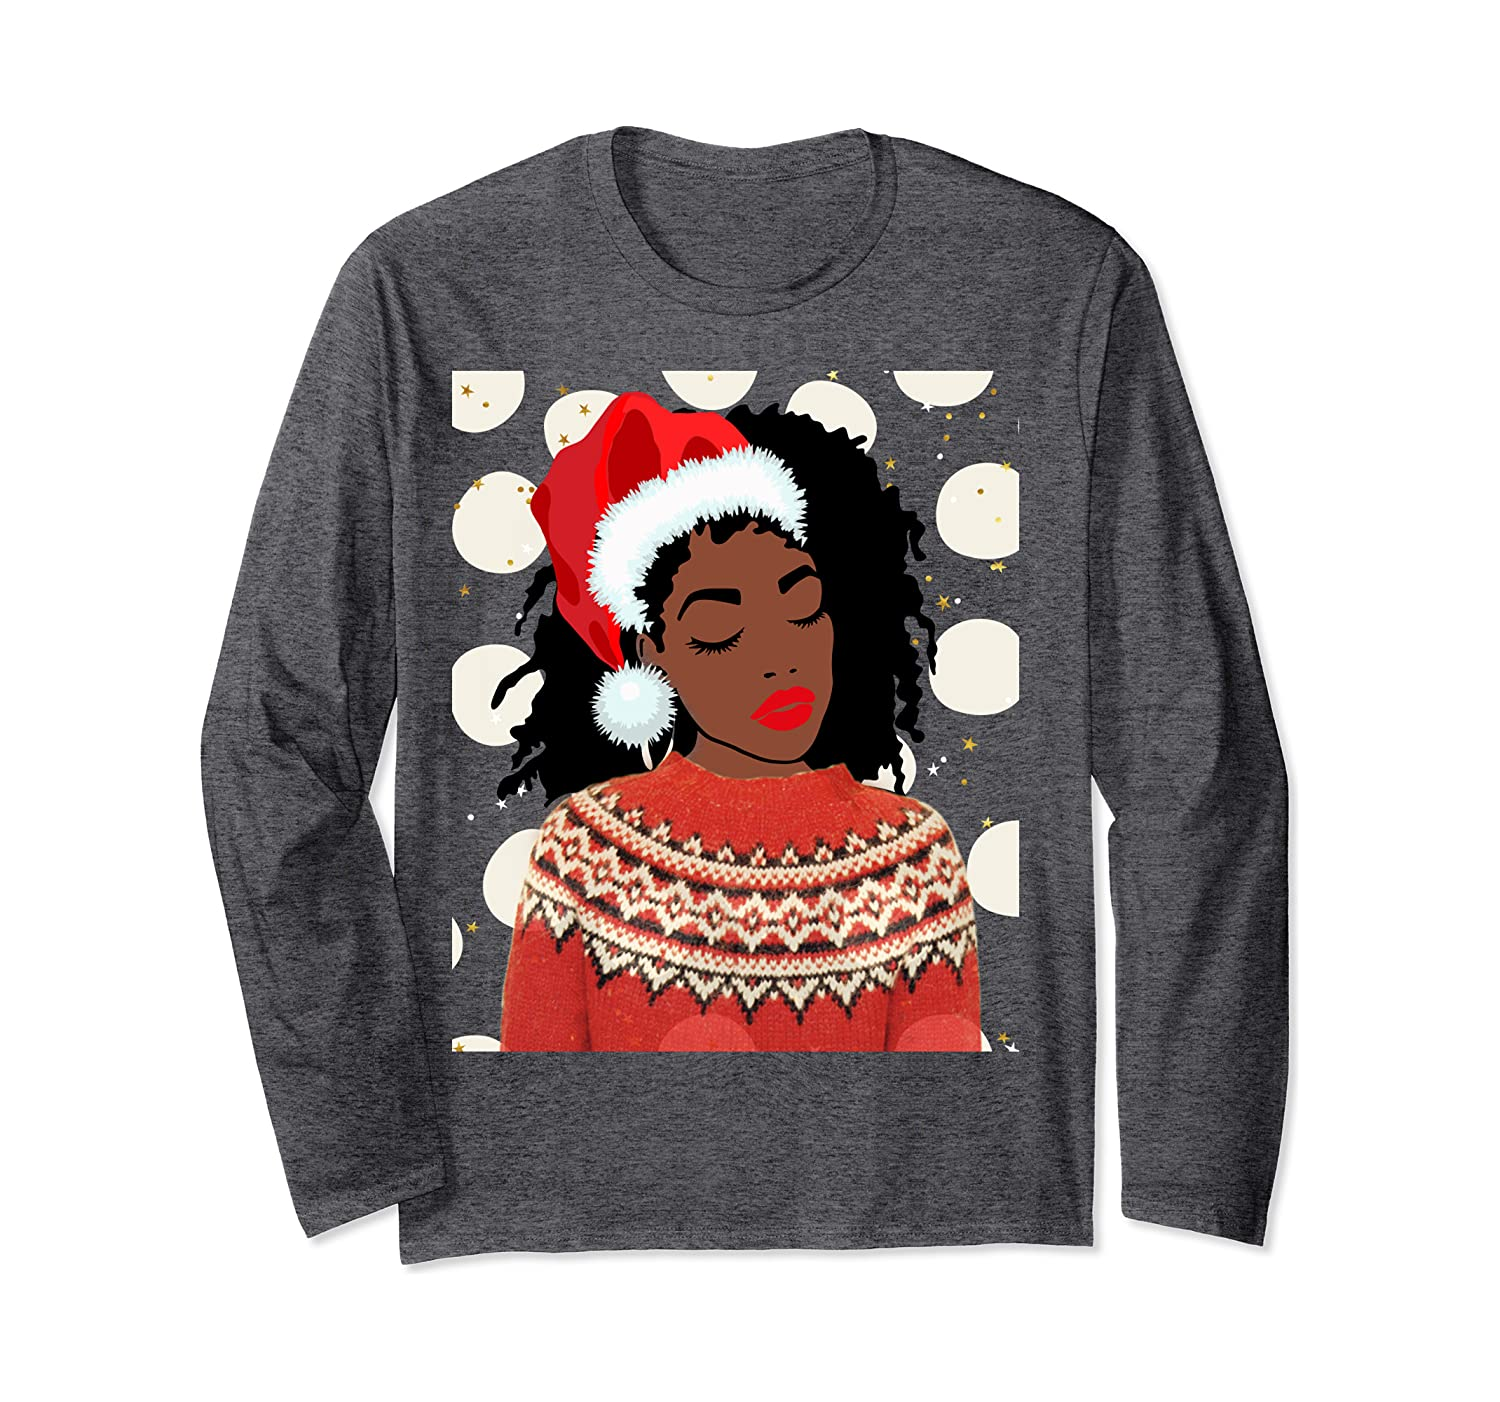 WOMEN'S CUTE HOLIDAY FESTIVAL SNOW DAY PARTY T-SHIRT OUTFIT